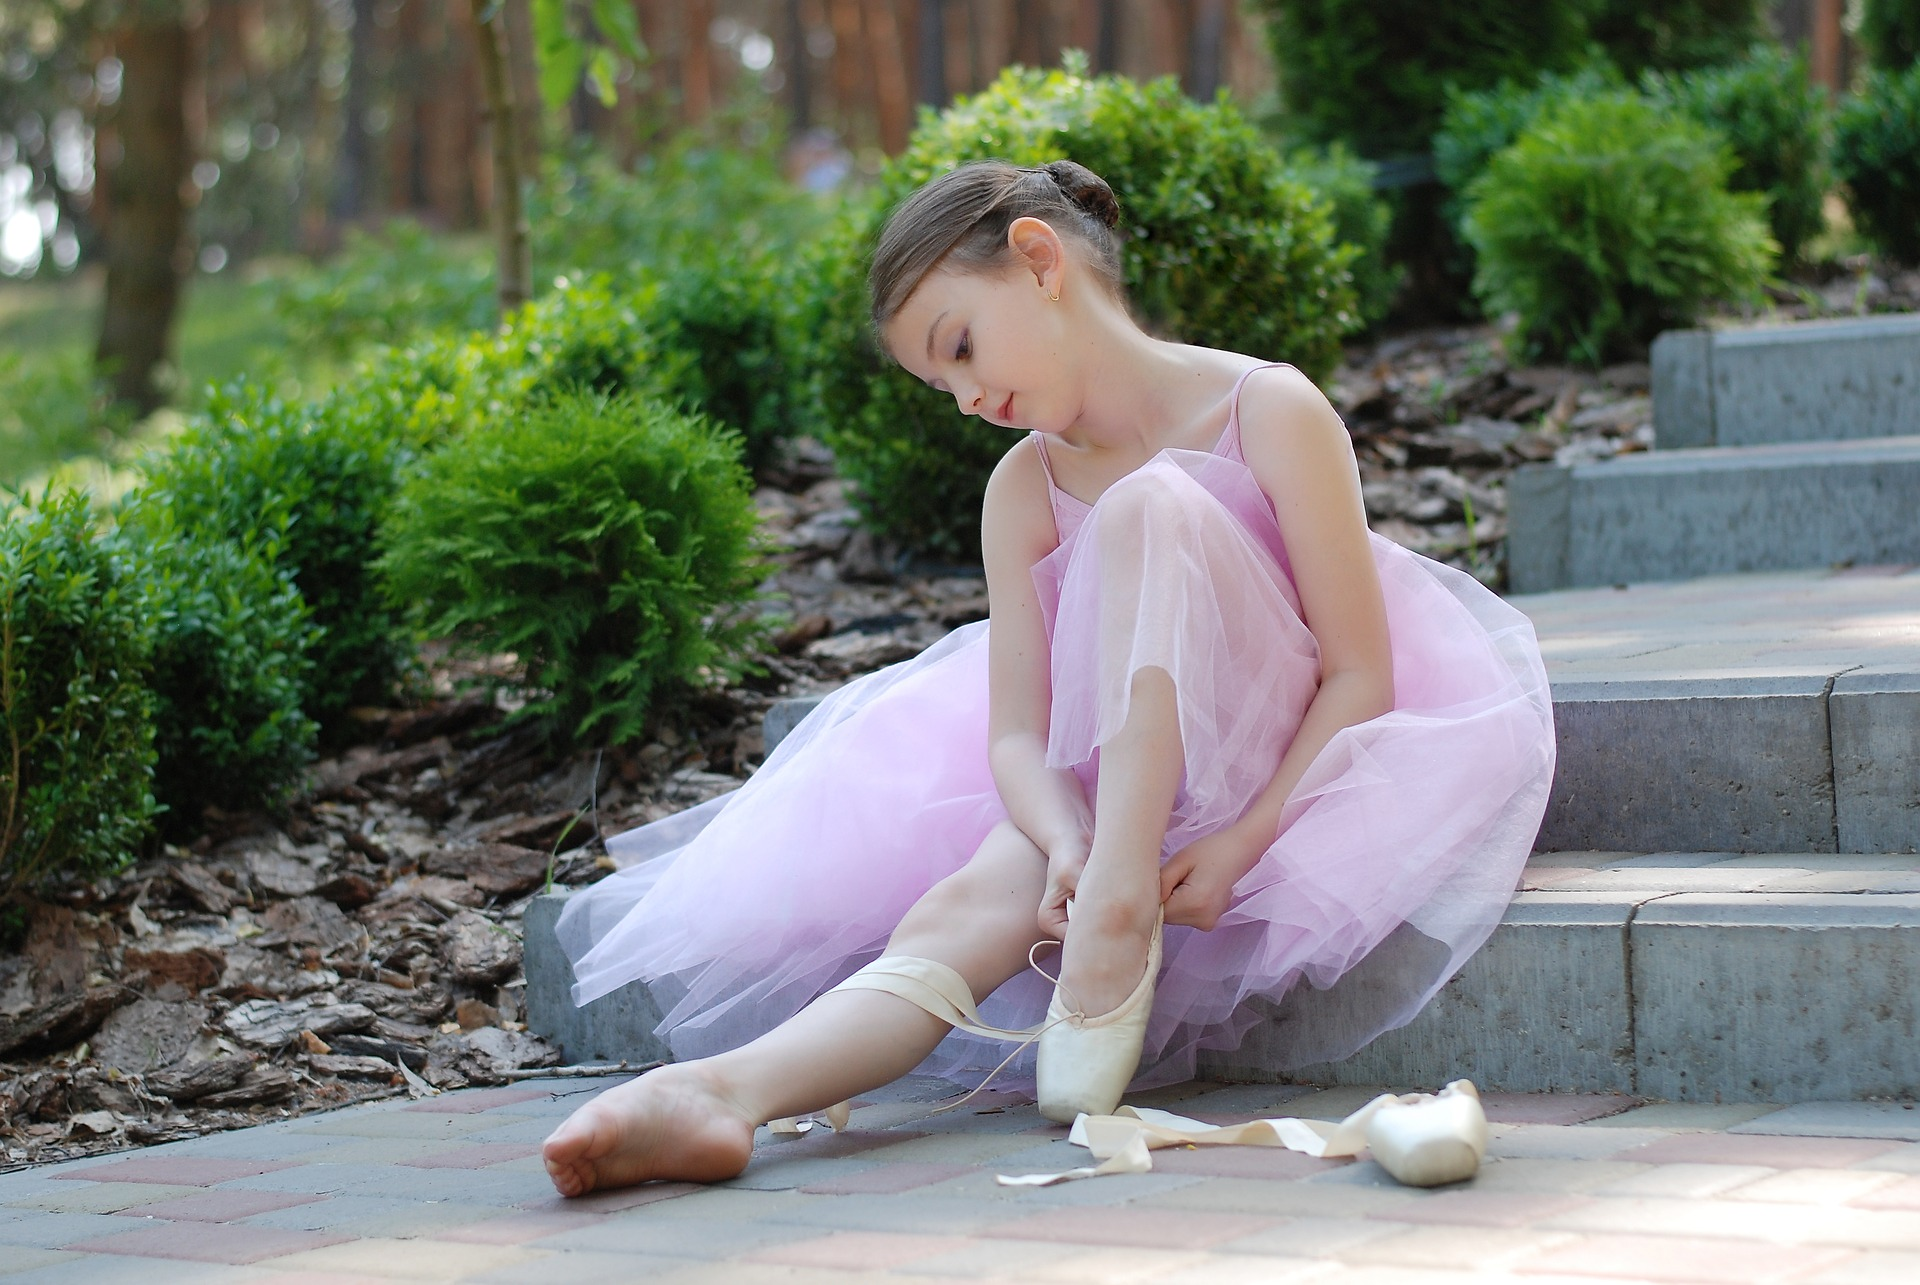 young girl in a ballerina outfit sitting on steps putting her pumps on